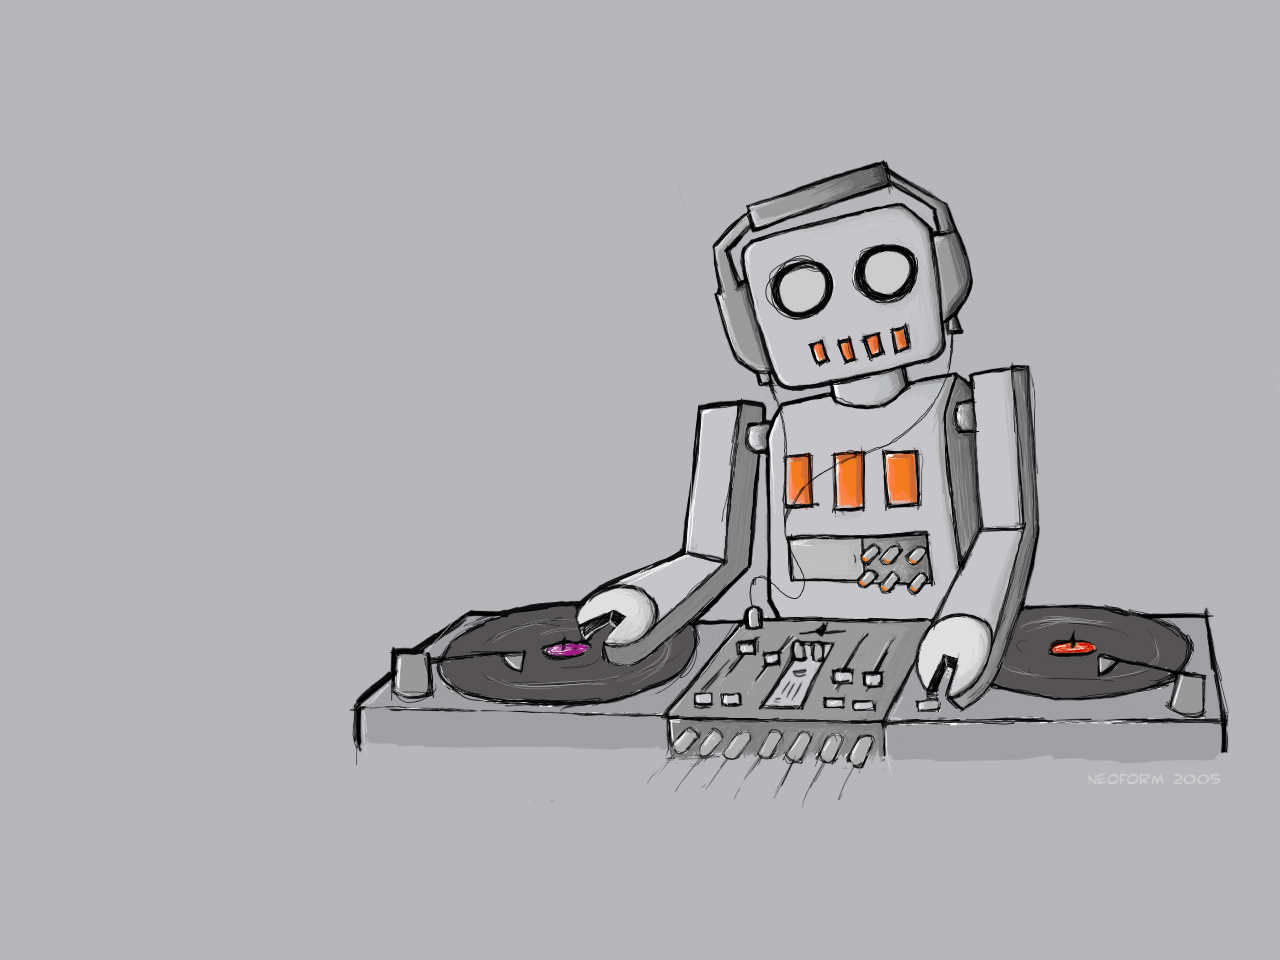 Robot on turntables